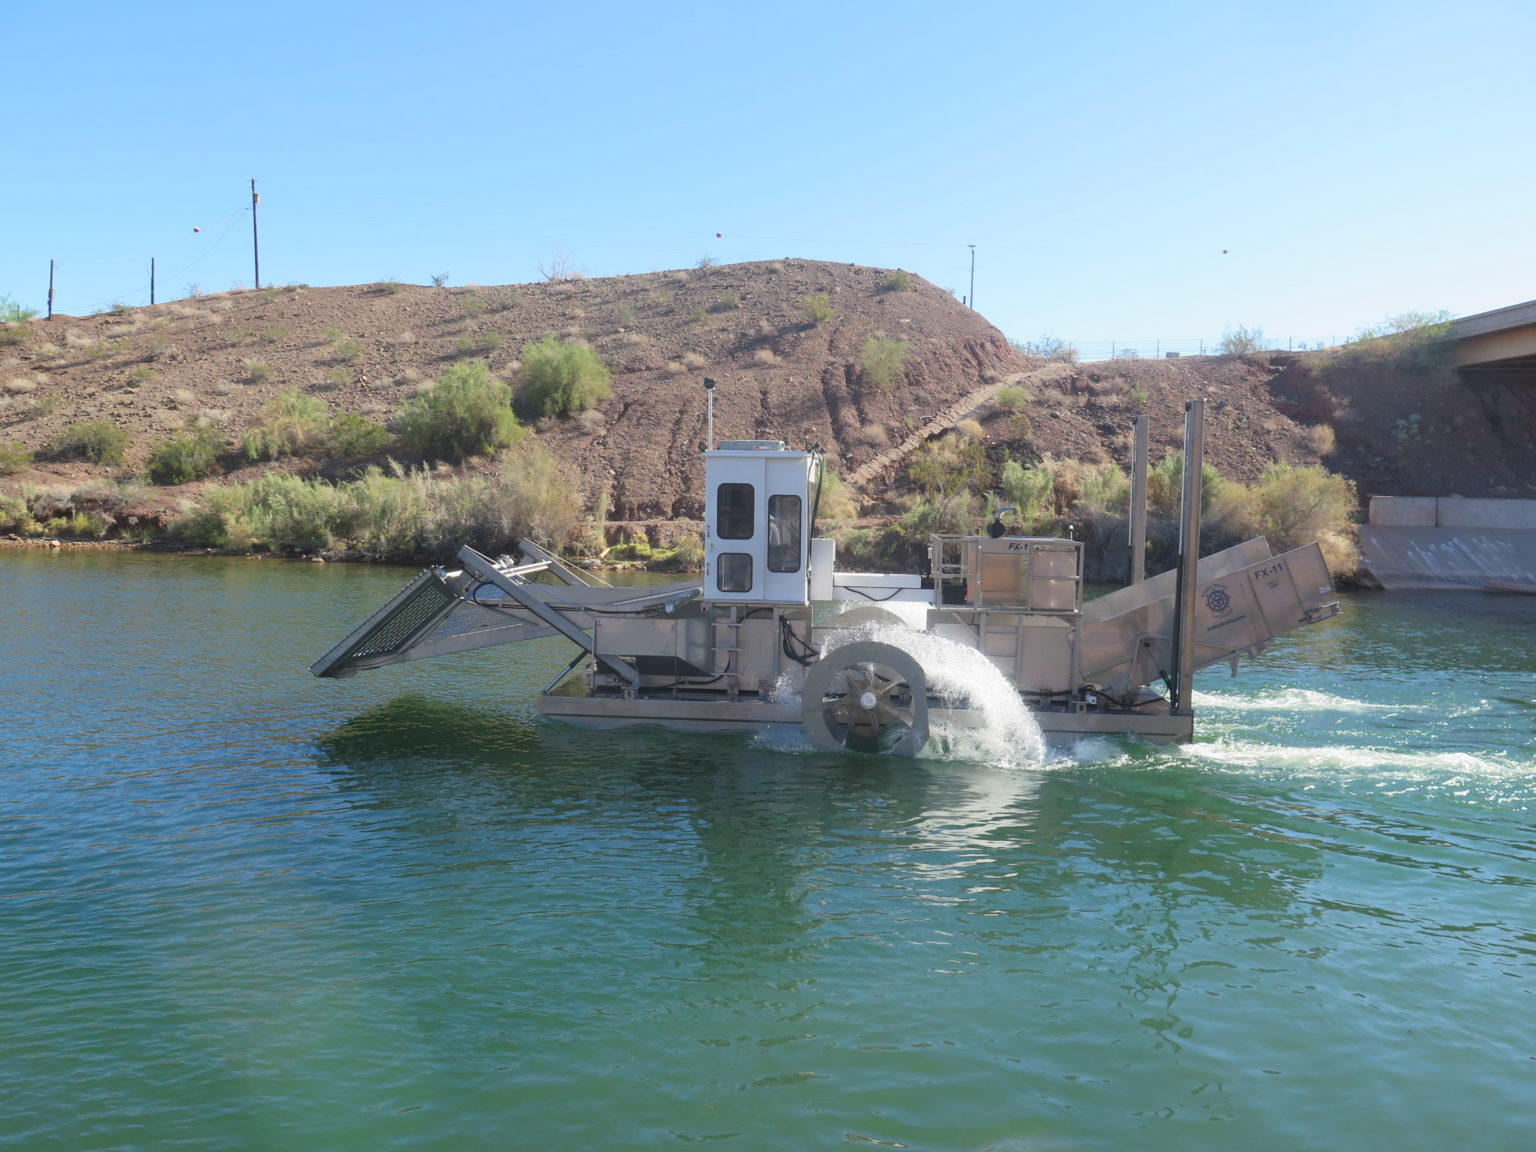 Alphaboats FX-11 Waterweed Harvester on the Job in Arizona